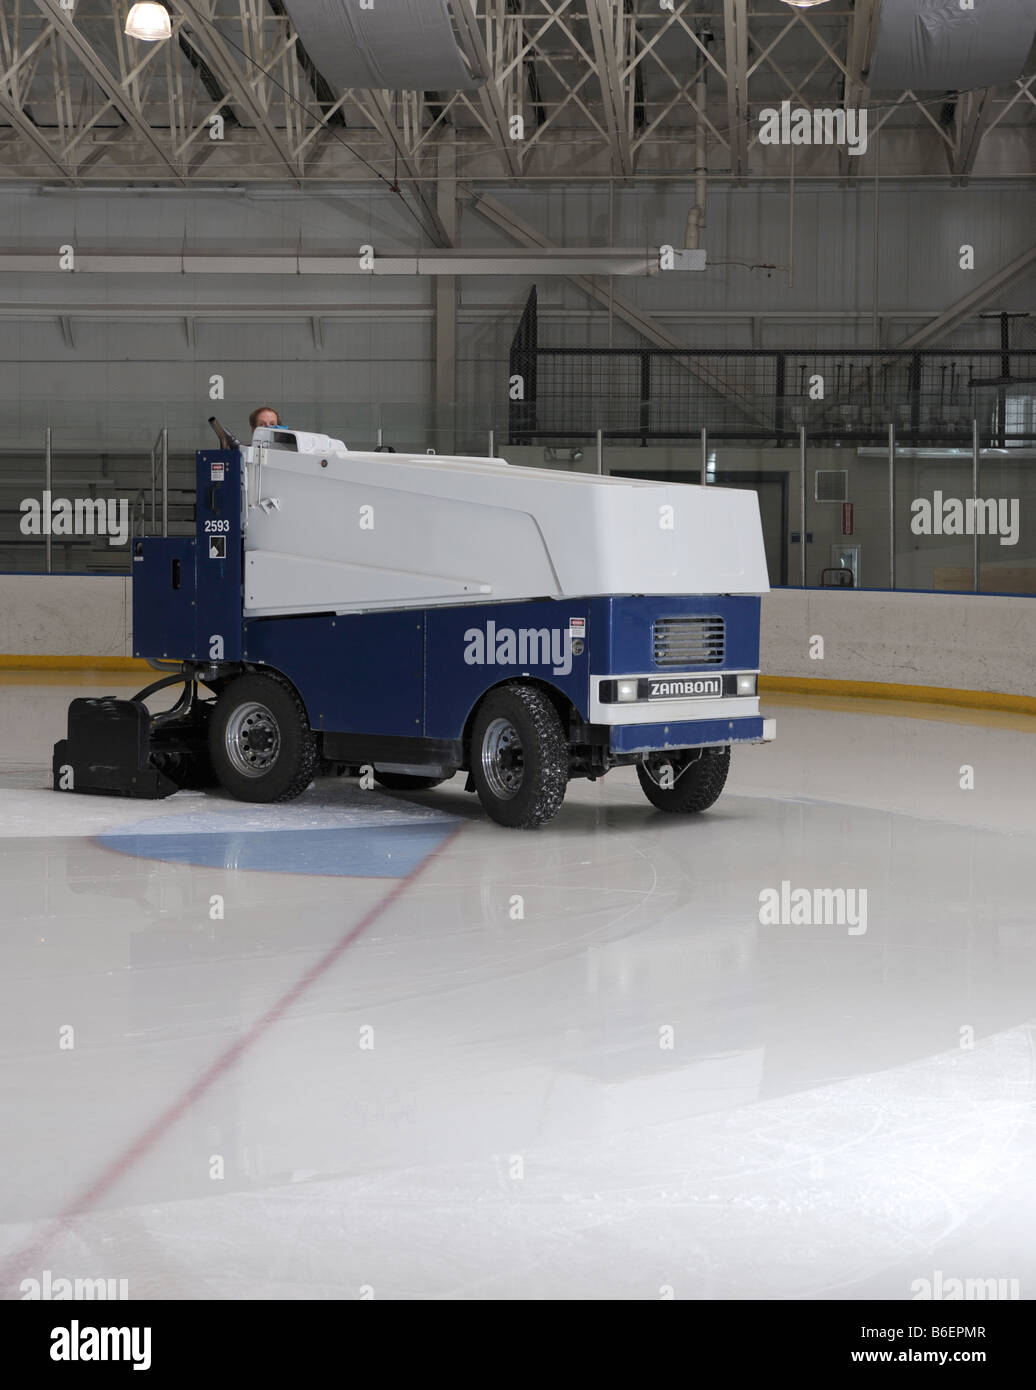 zamboni-cleaning-ice-on-a-hockey-rink-in